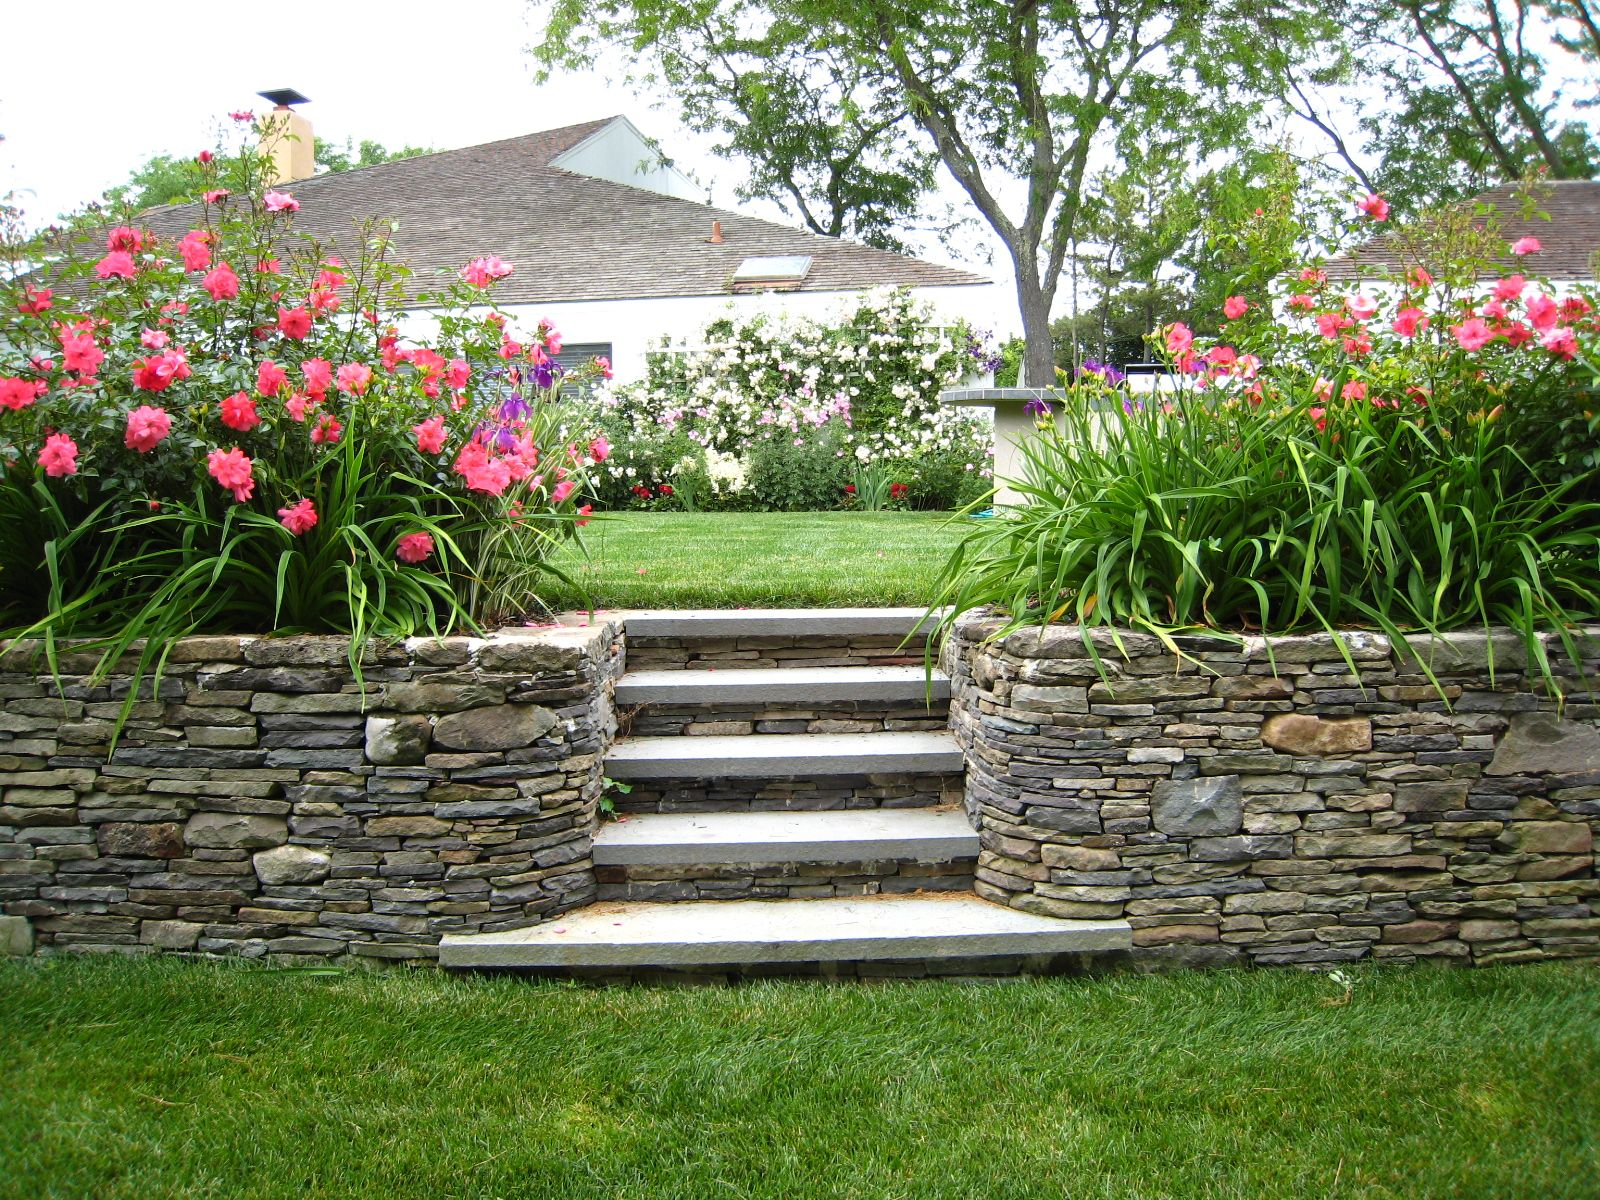 Garden Landscape designs of landscape architecture | front yards, driveways and yards